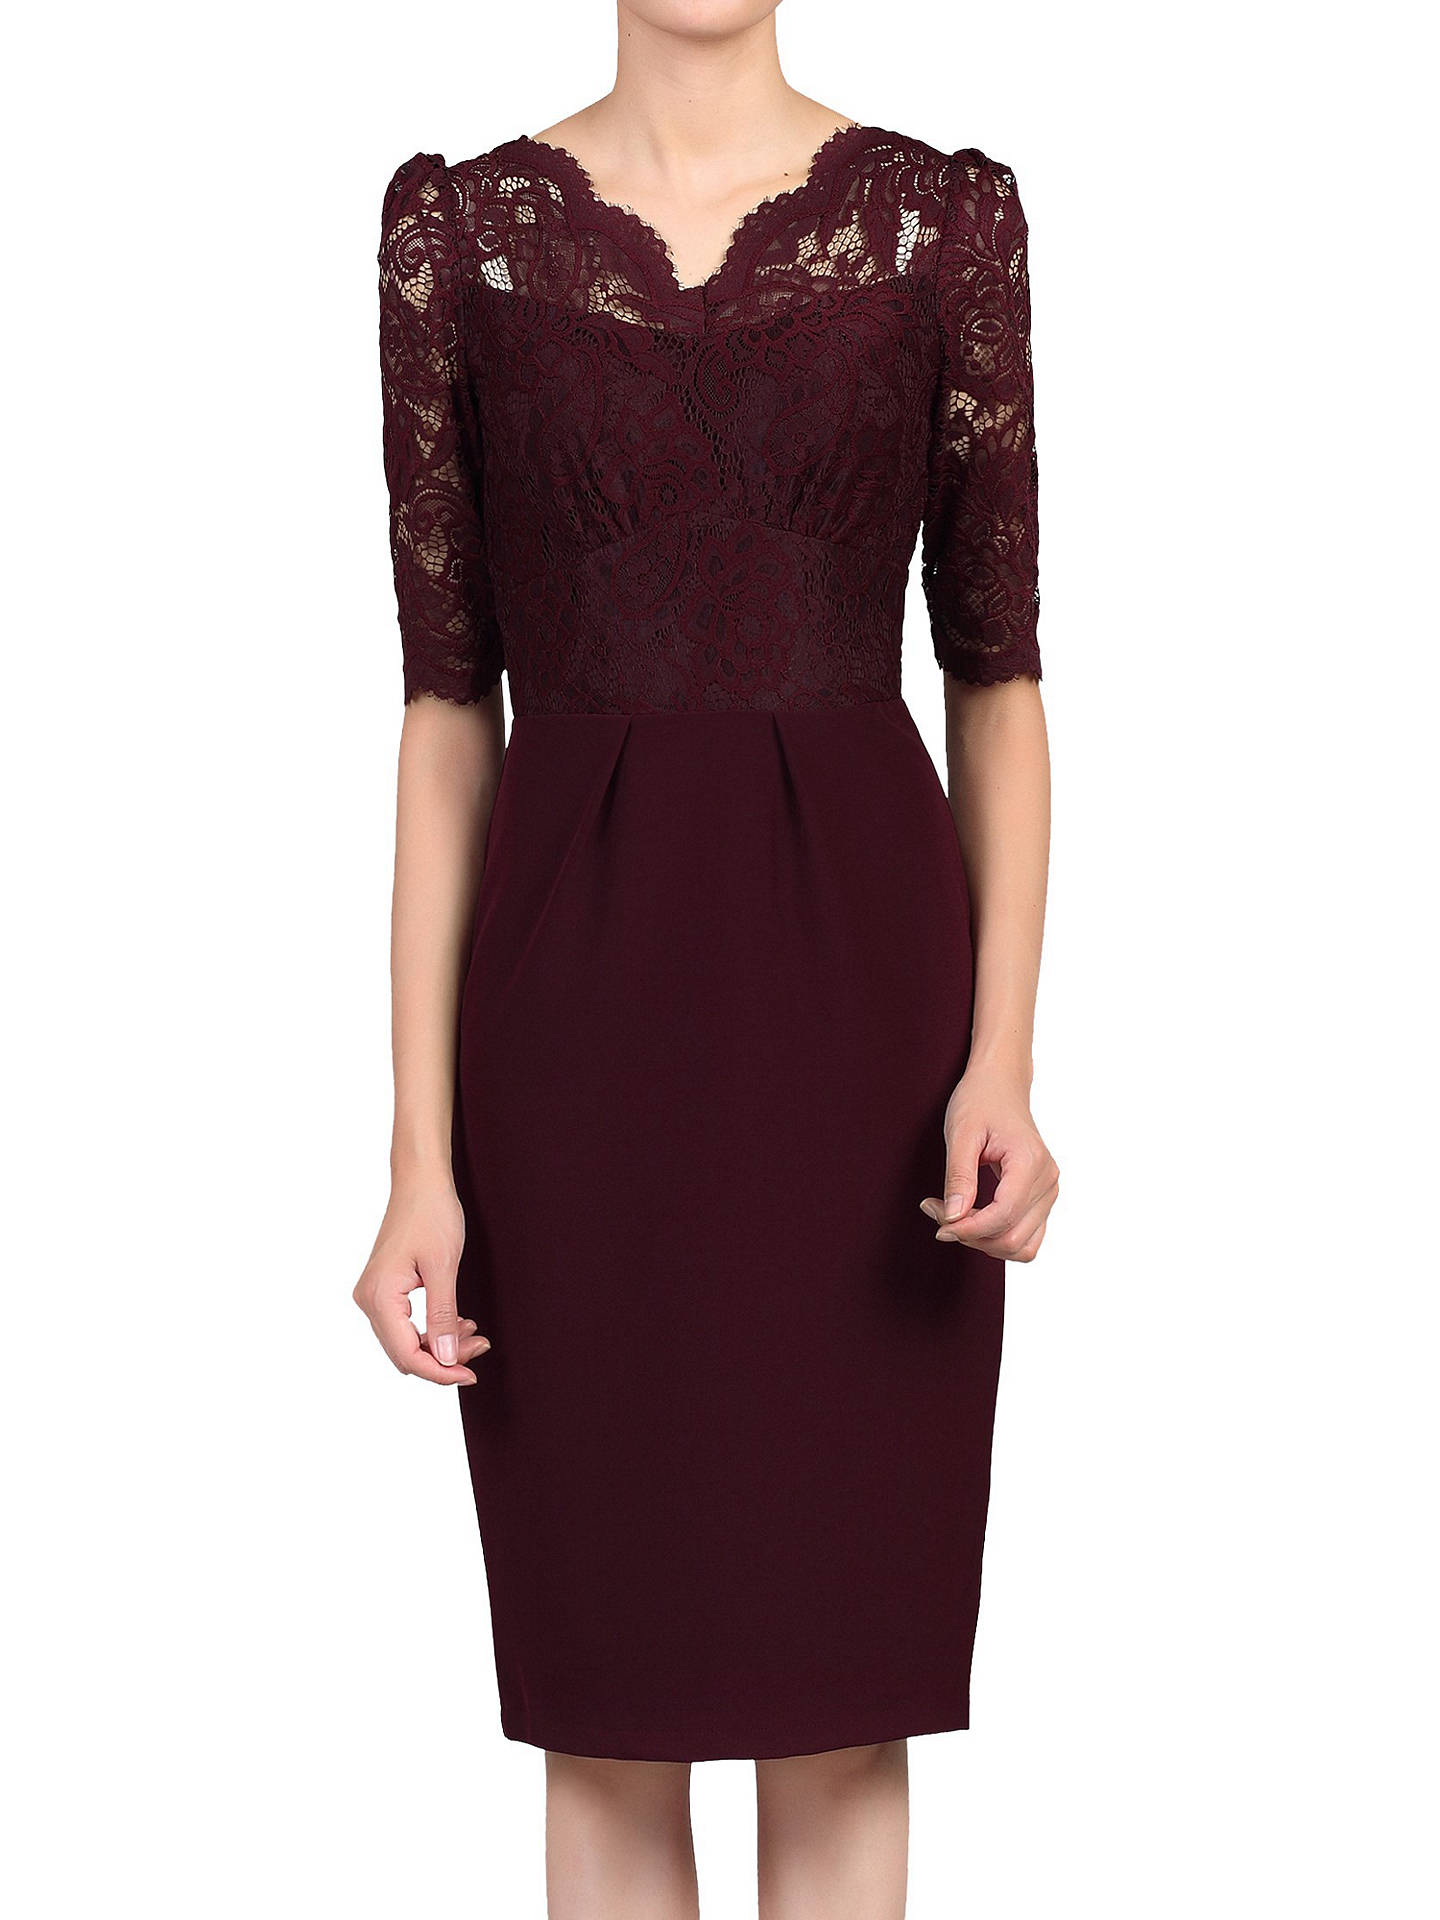 f7c57cfb8af6 Buy Jolie Moi Elbow Sleeve Lace Bodycon Dress, Burgundy, 8 Online at  johnlewis.